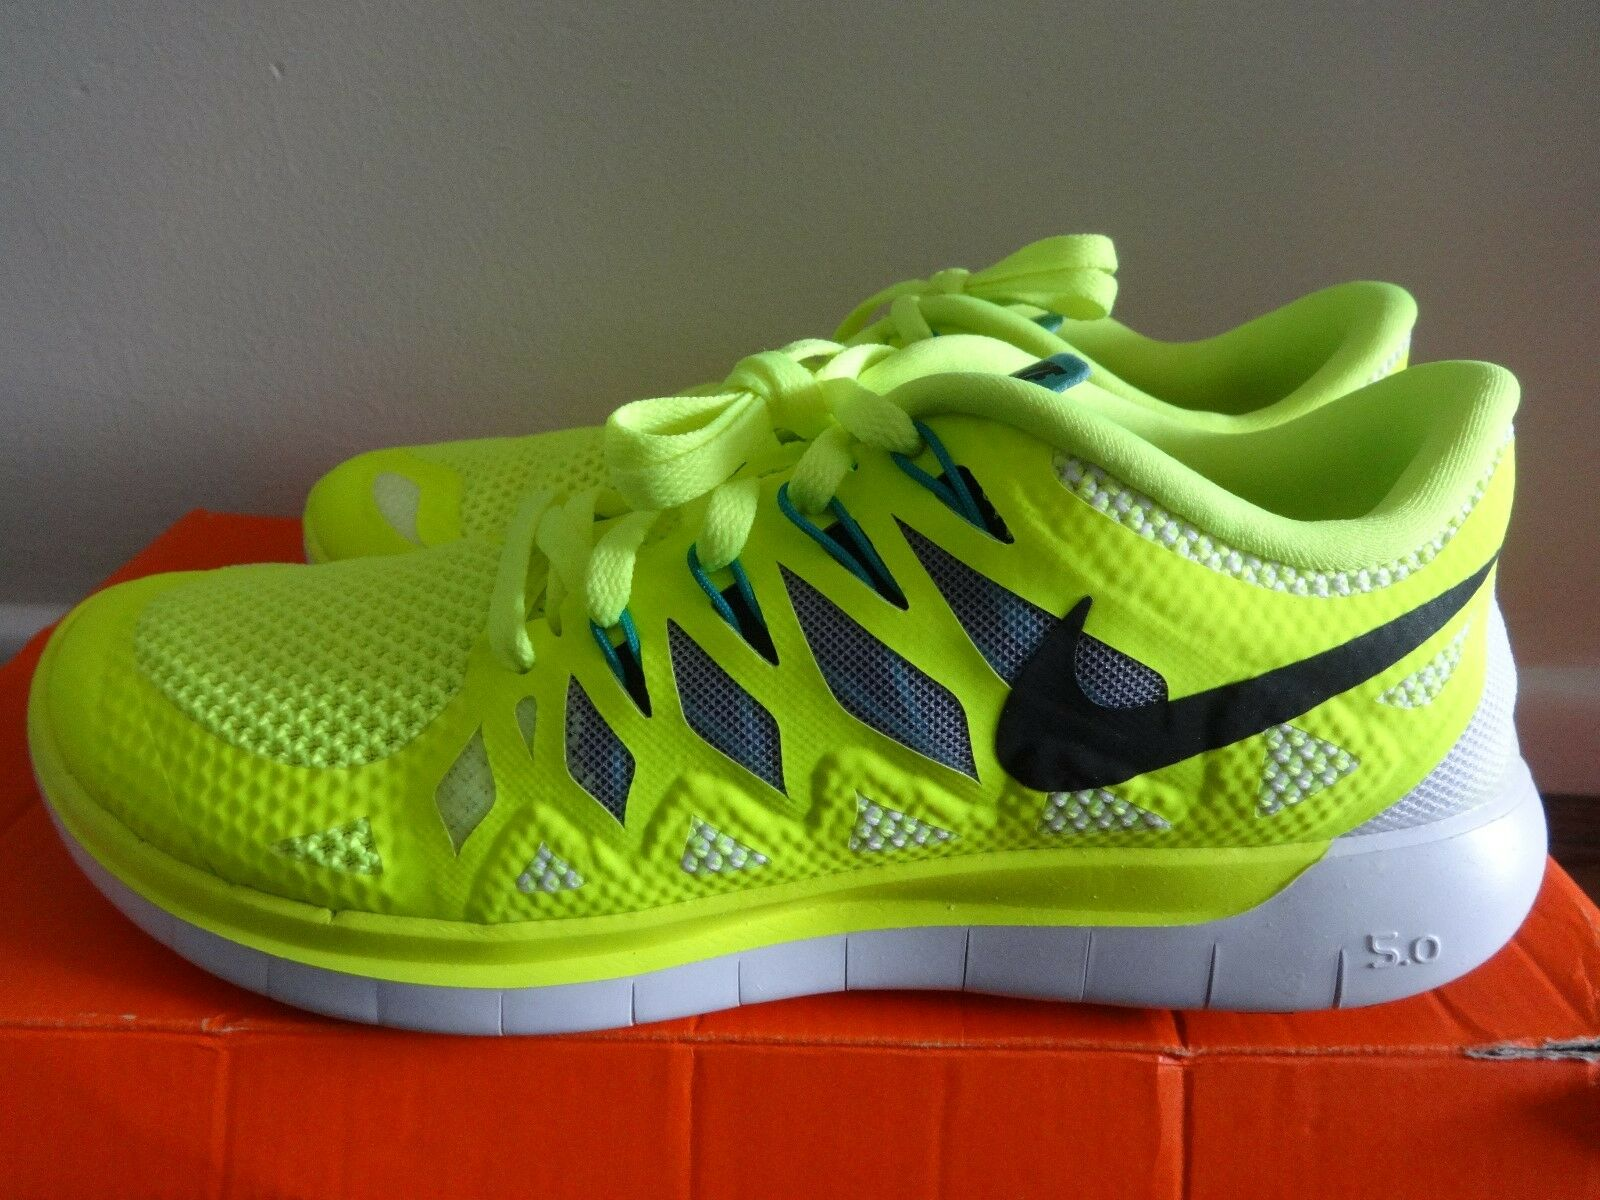 Nike Free 5.0  Femme  trainers  chaussures  642199 701 uk 3.5 eu 36.5 us 6 NEW+BOX